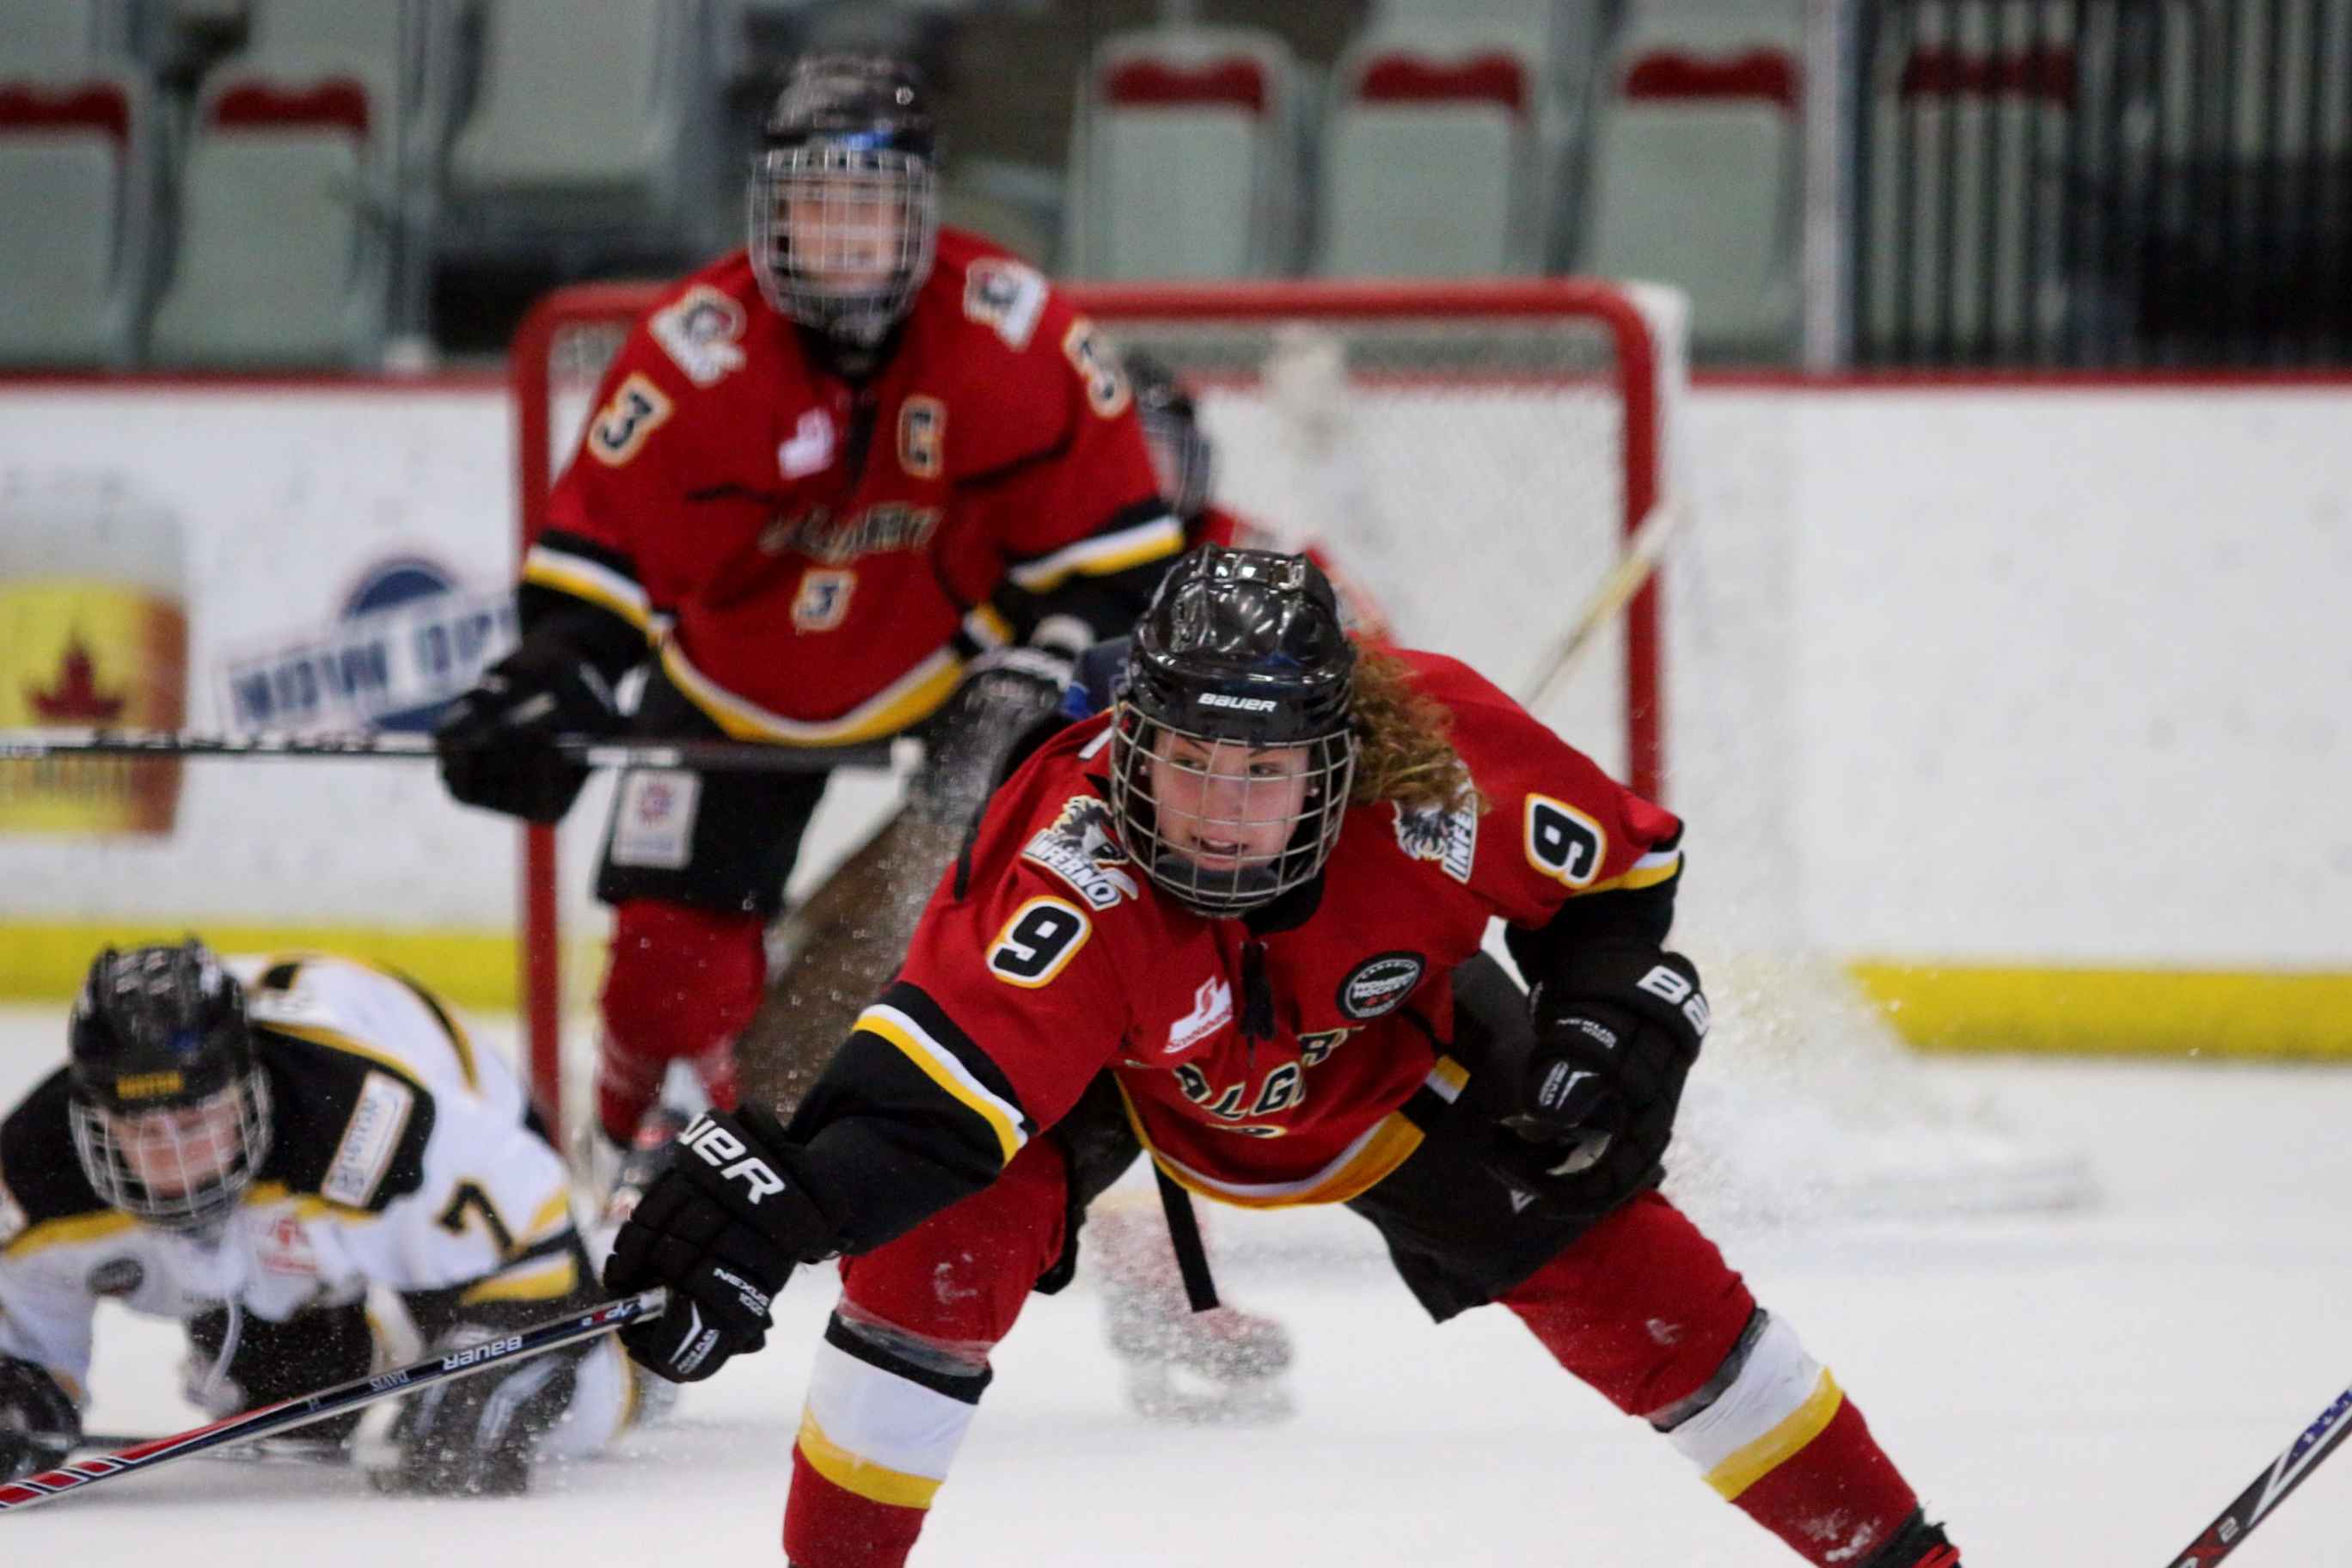 Sarah Davis makes her debut with the Canadian women's national team at the end of this month in the Women's Worlds in Malmo, Sweden.